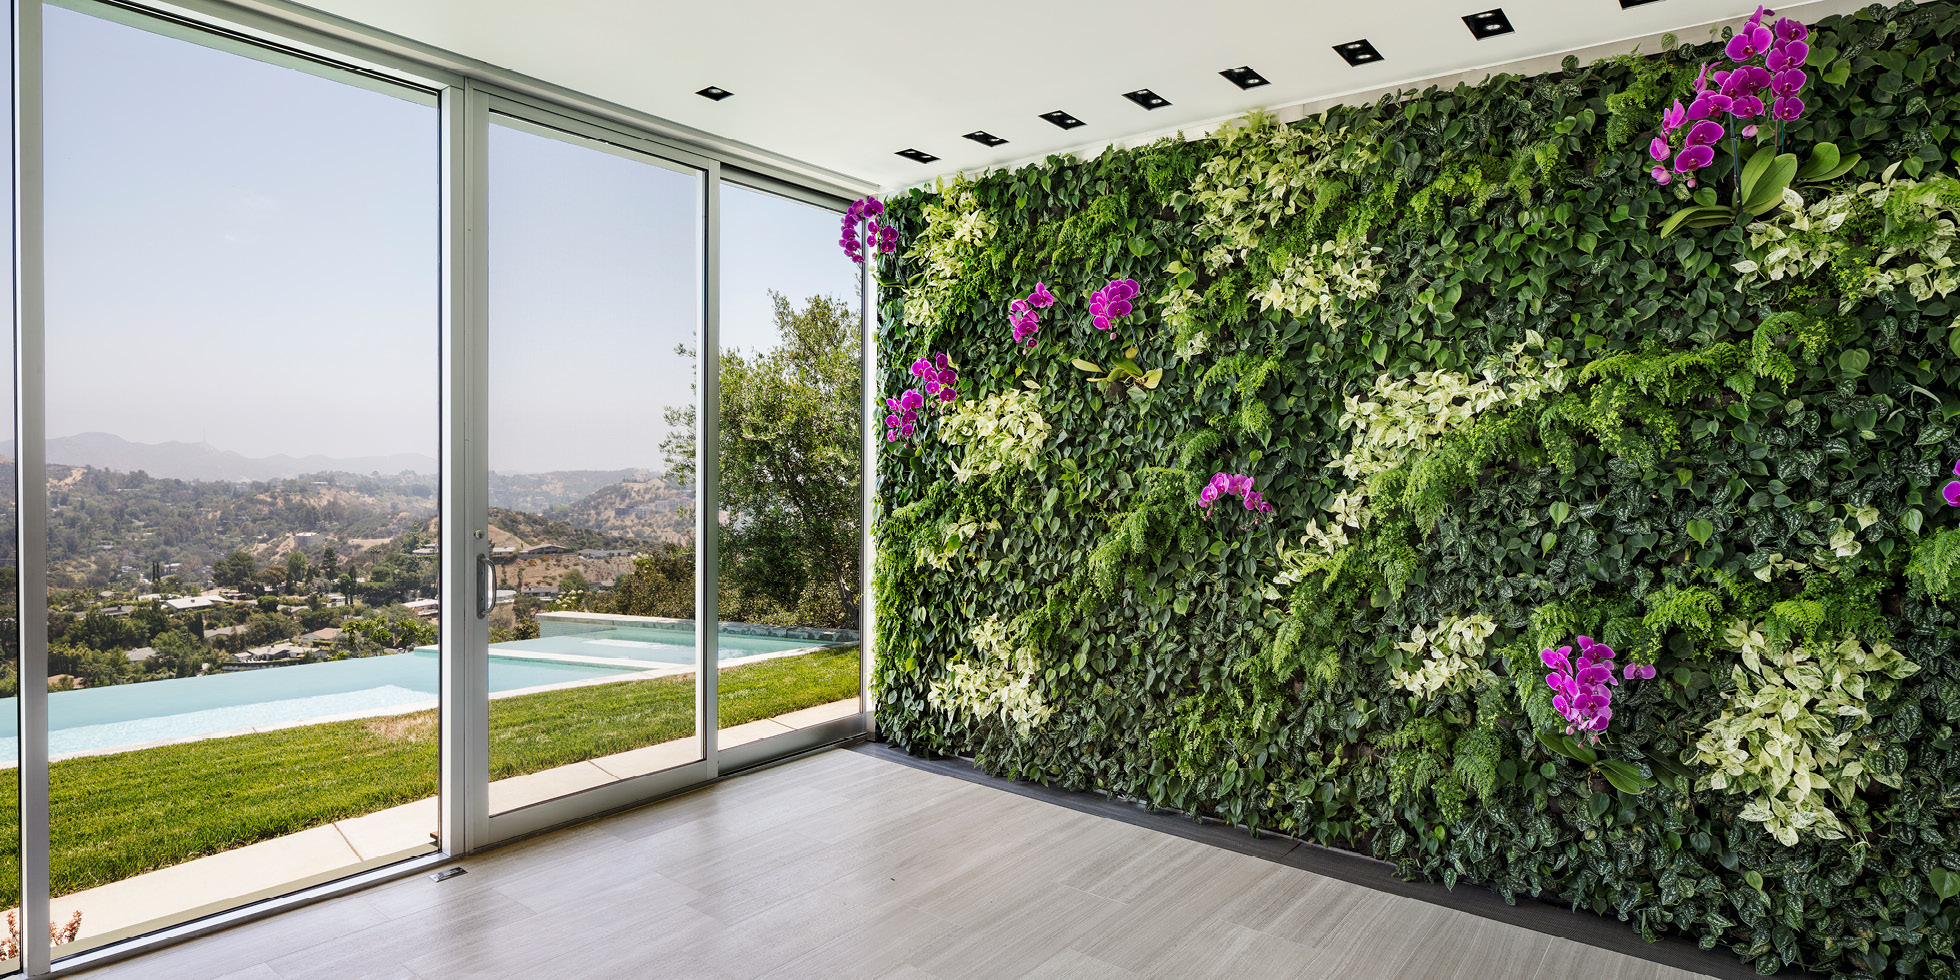 Skyline Residence Living Wall by Habitat Horticulture - View 1